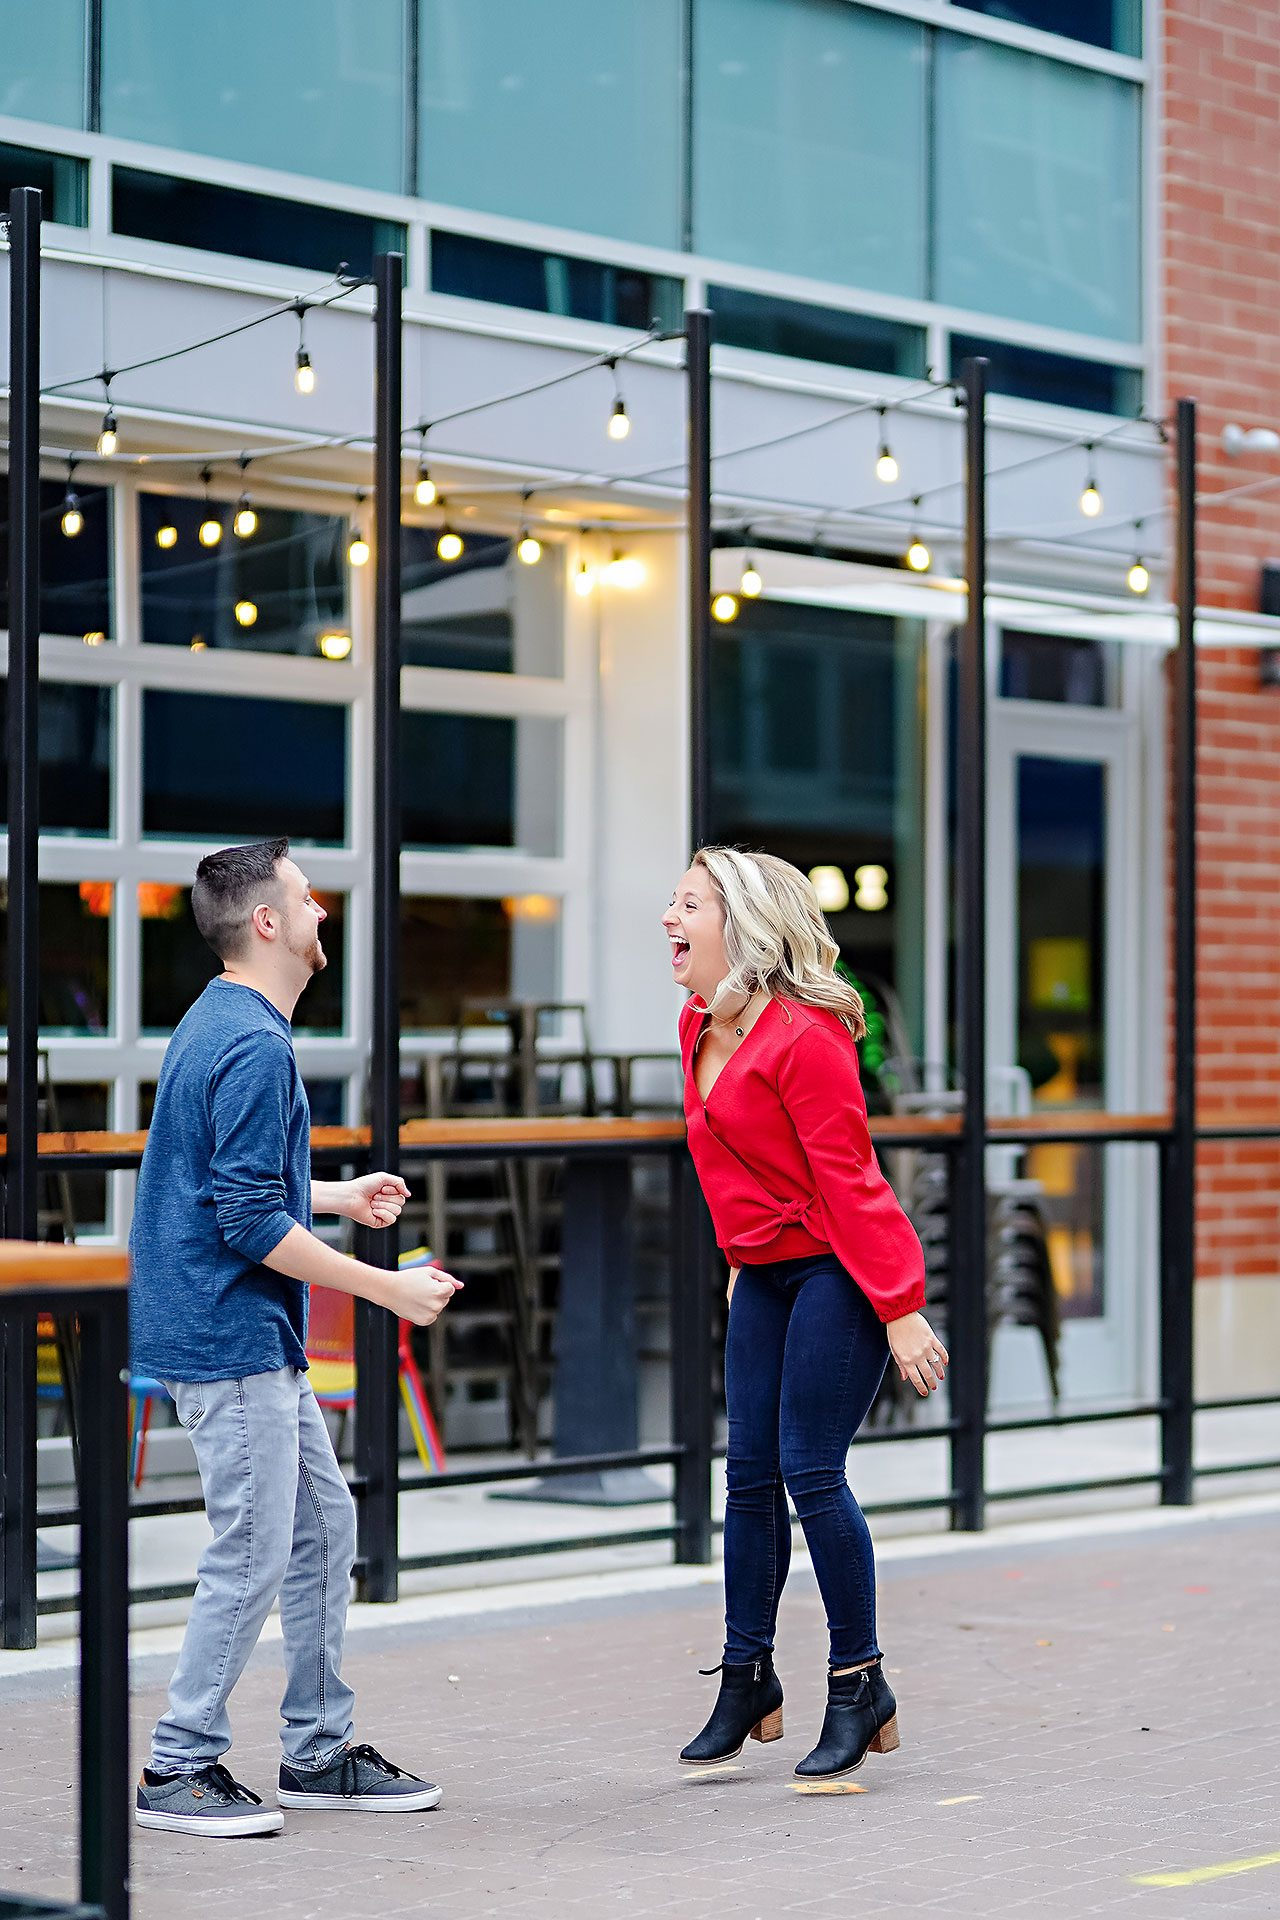 Kristen Jonny Indianapolis Downtown Engagement Session 020